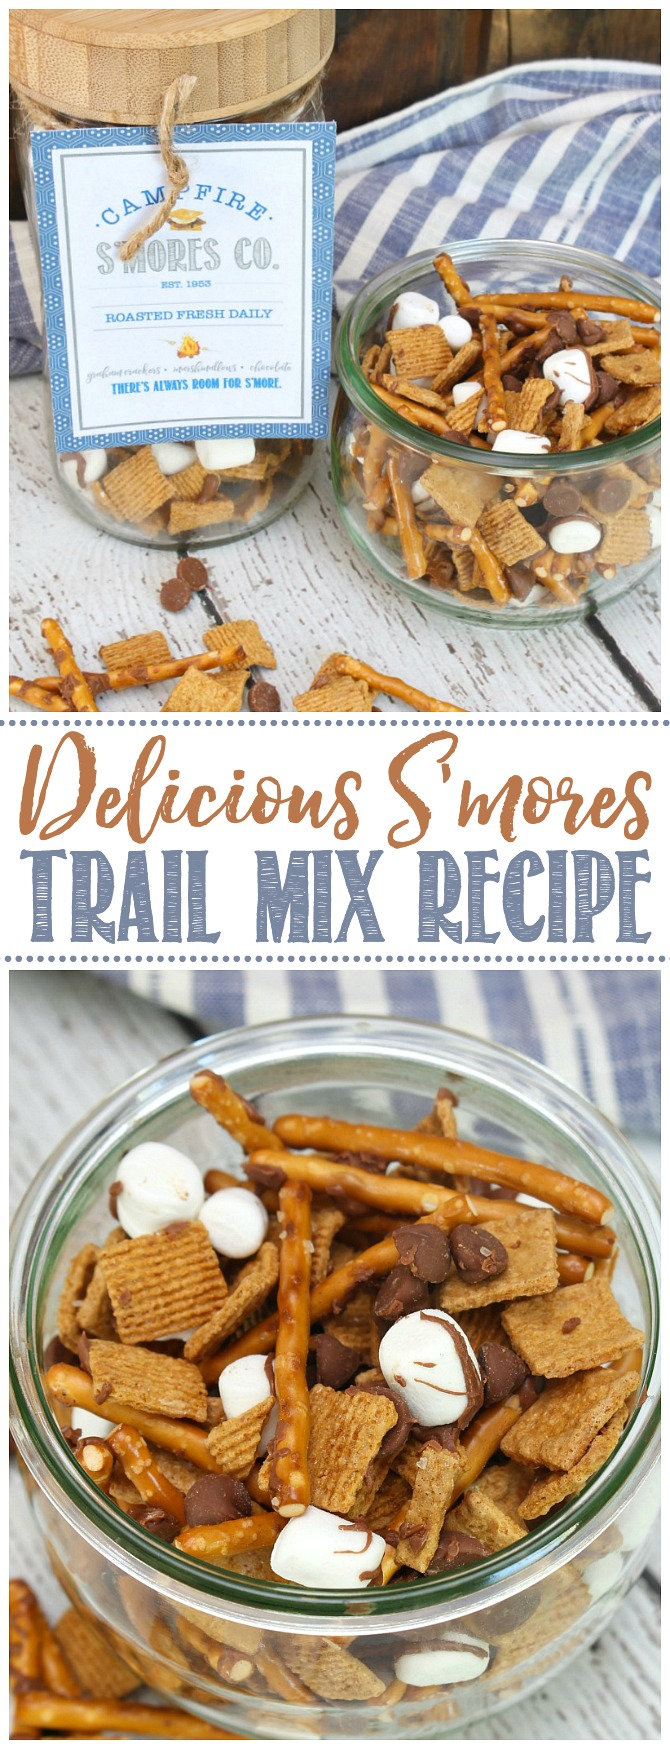 S'mores trail mix with Golden grahams, mini marshmallows, chocolate chips, and pretzel sticks drizzled in chocolate.